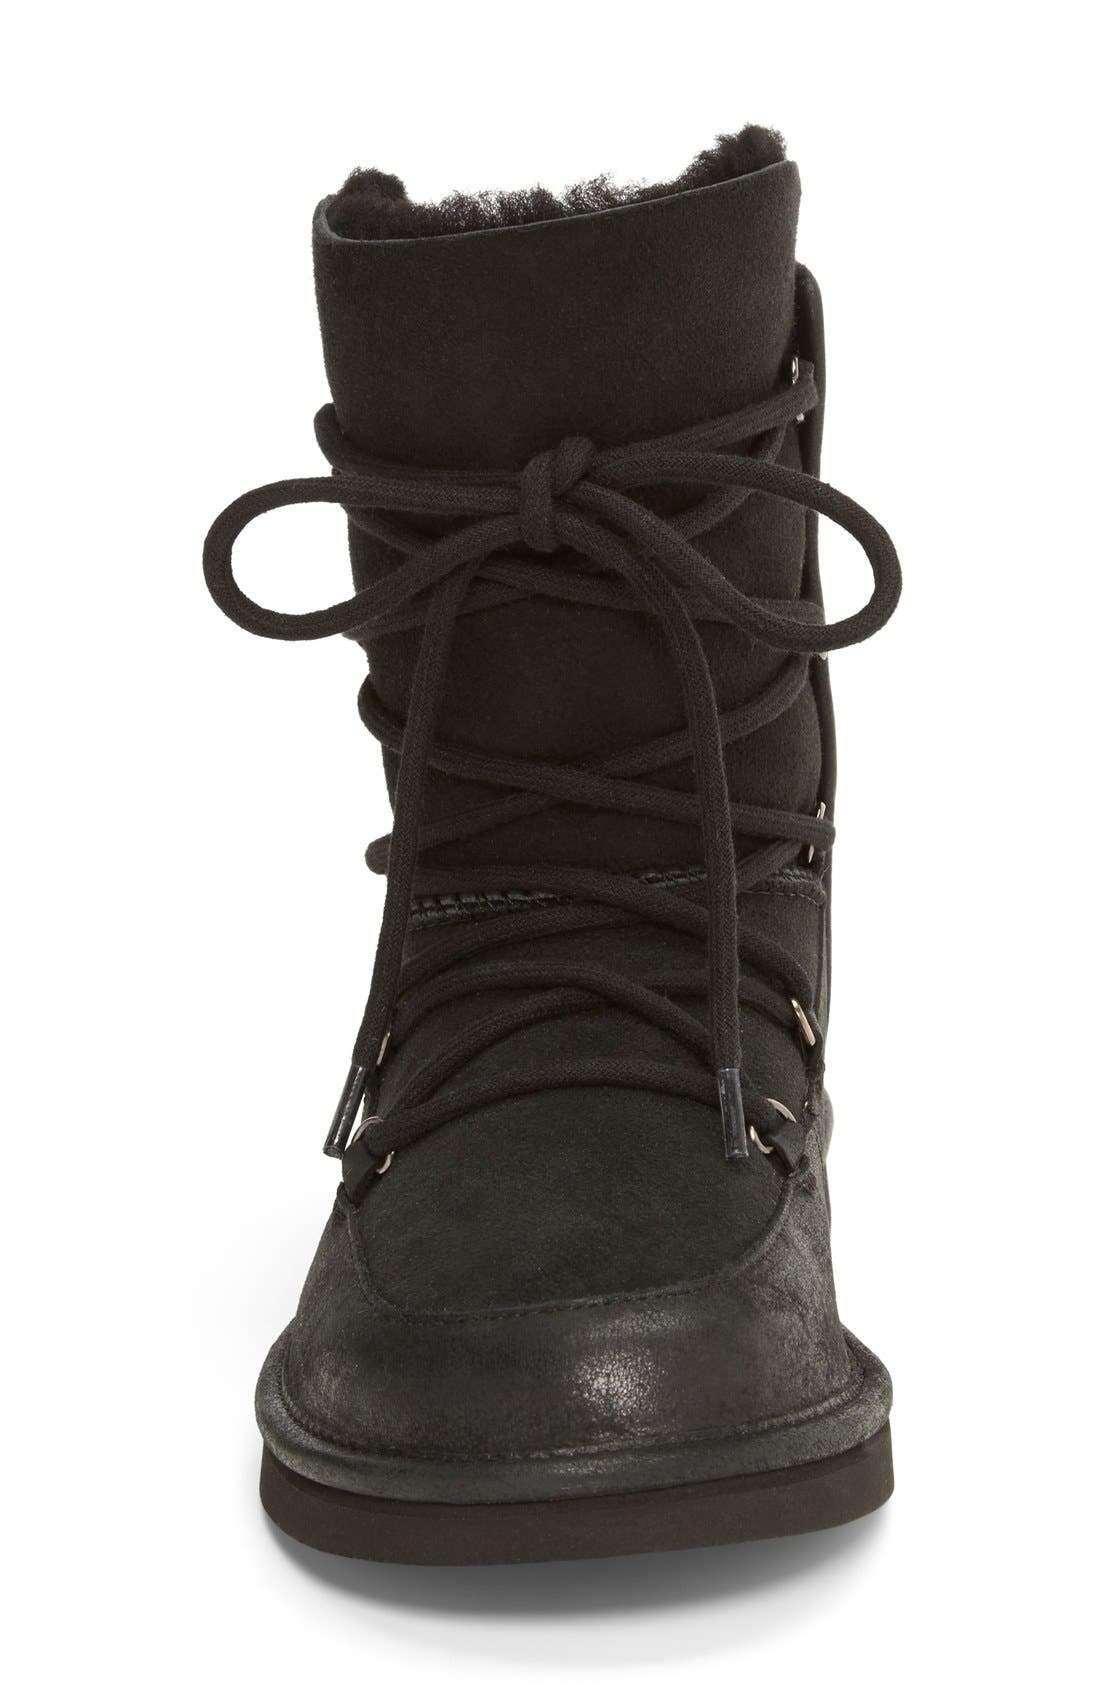 UGG<SUP>®</SUP>, Lodge Water Resistant Lace-Up Boot, Alternate thumbnail 4, color, 001